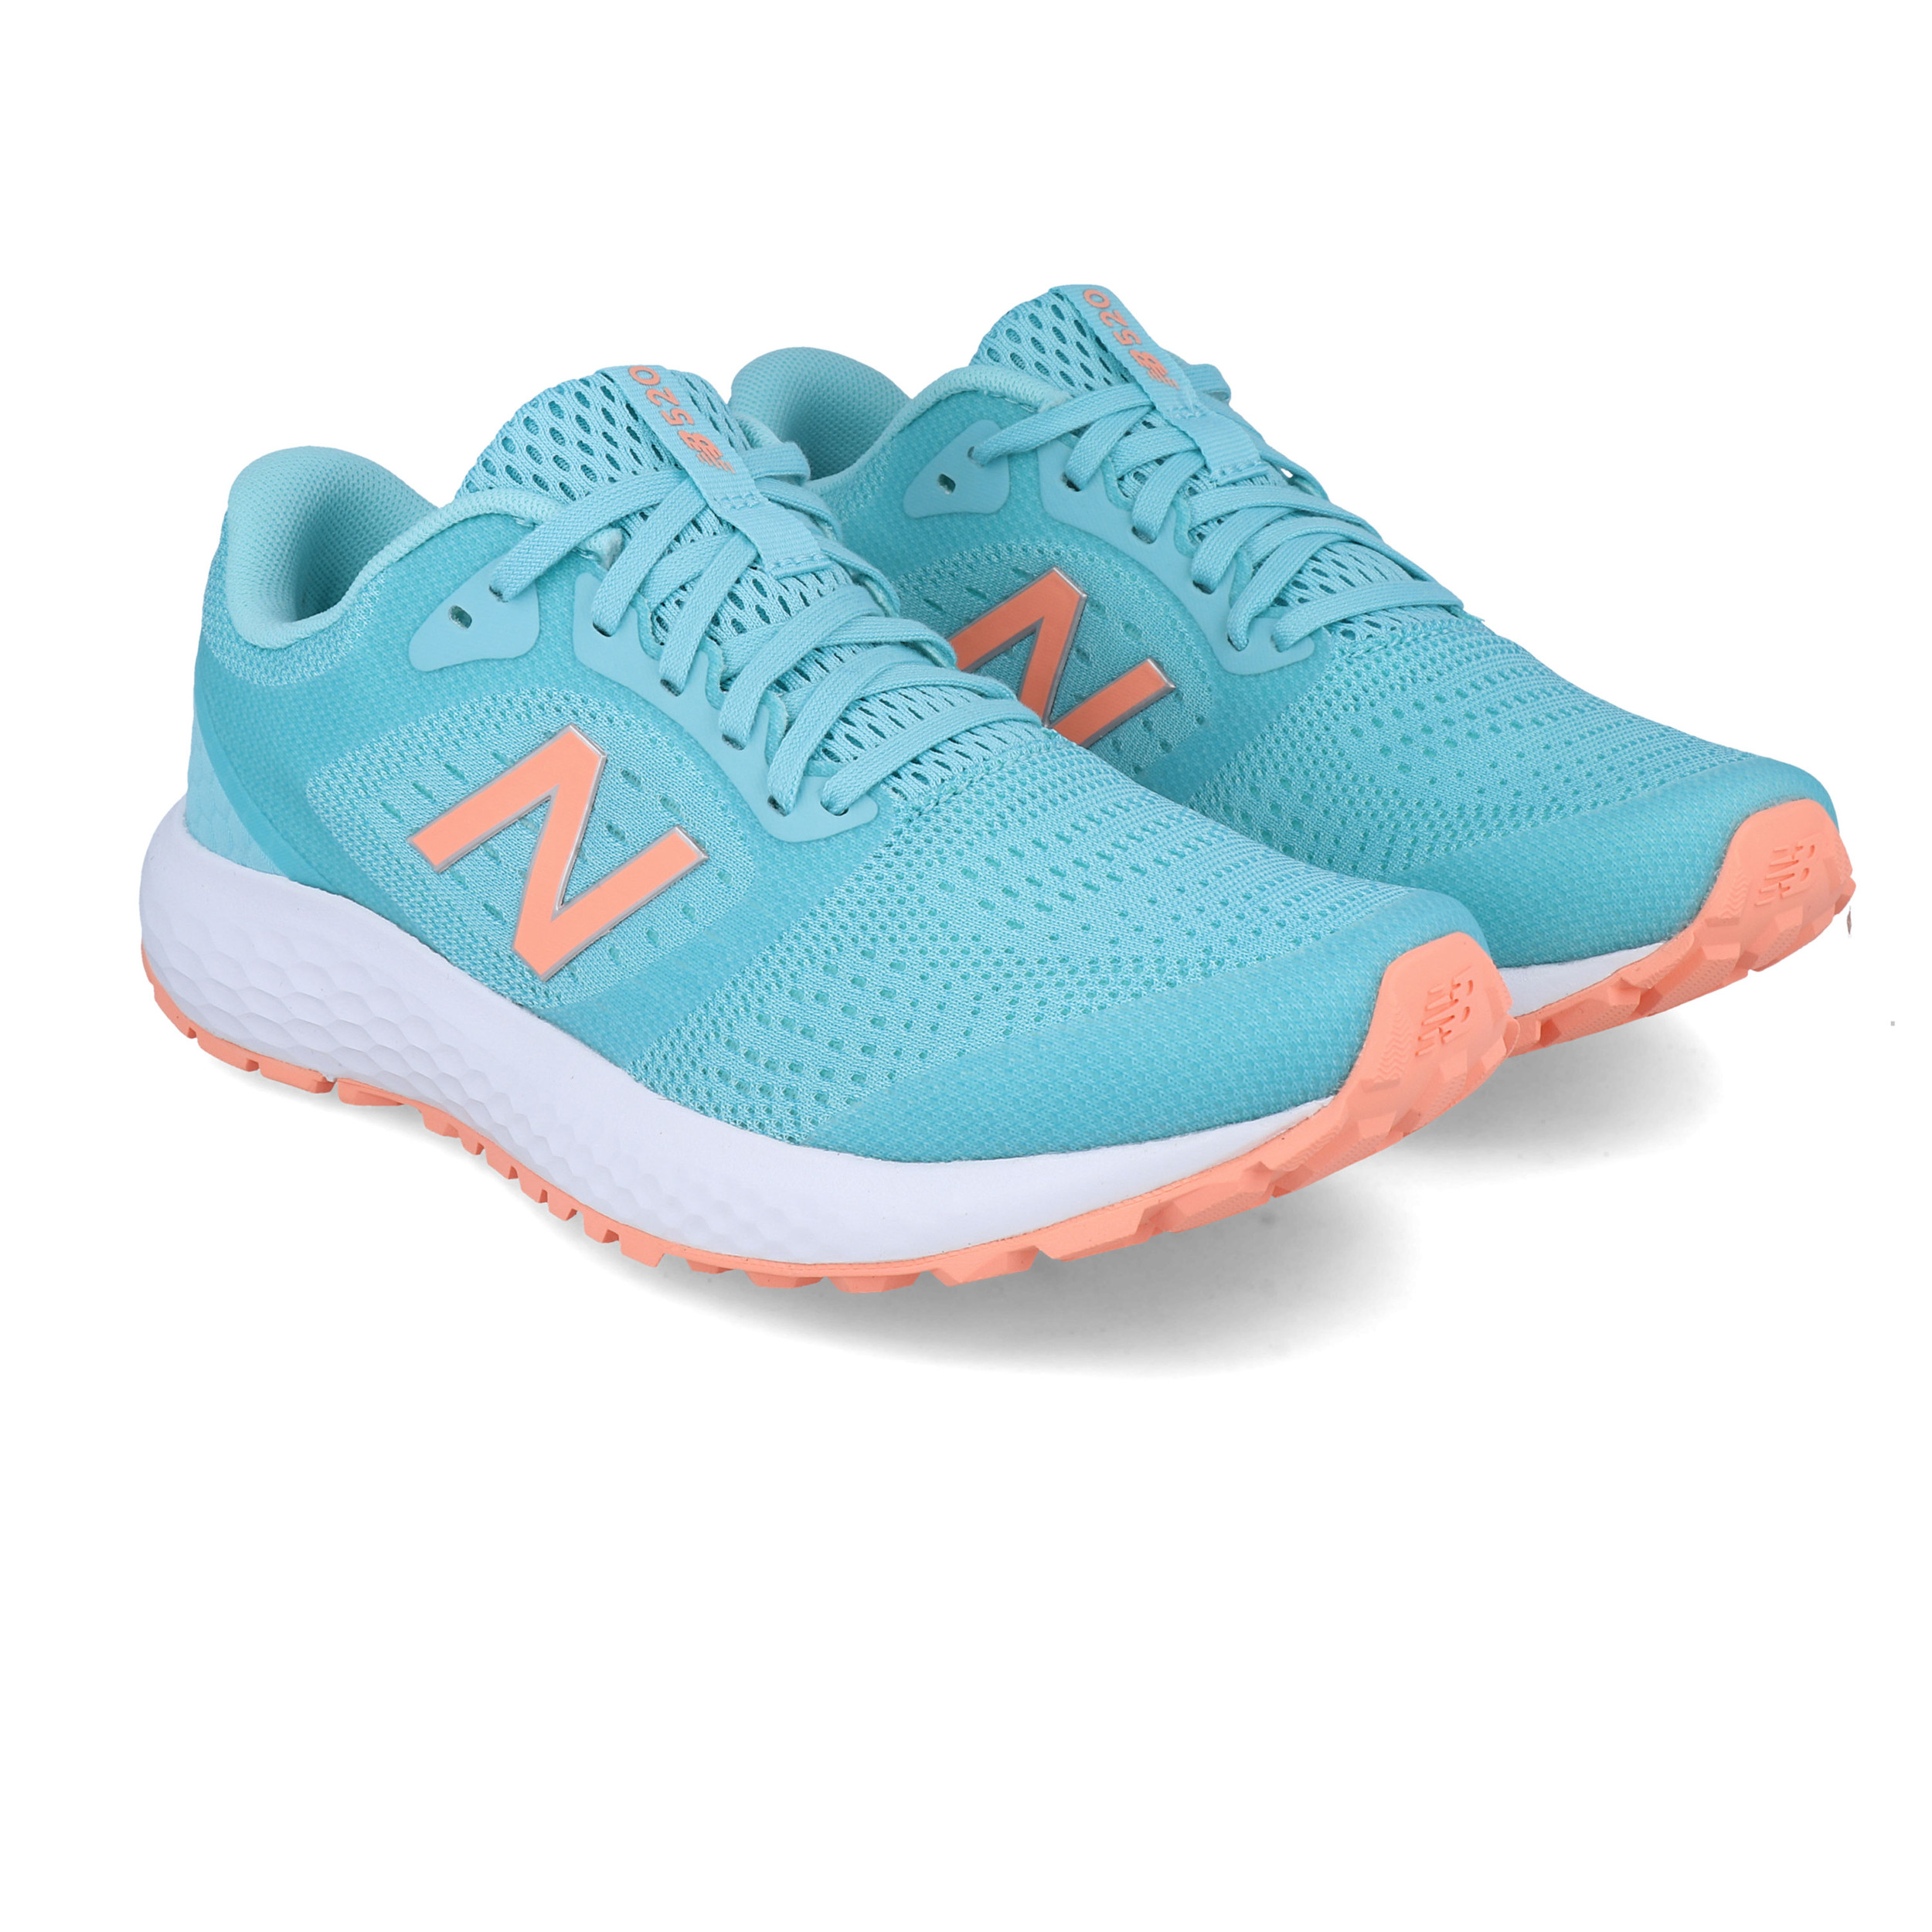 Details about New Balance Womens 520v6 Running Shoes Trainers Sneakers - Blue Sports